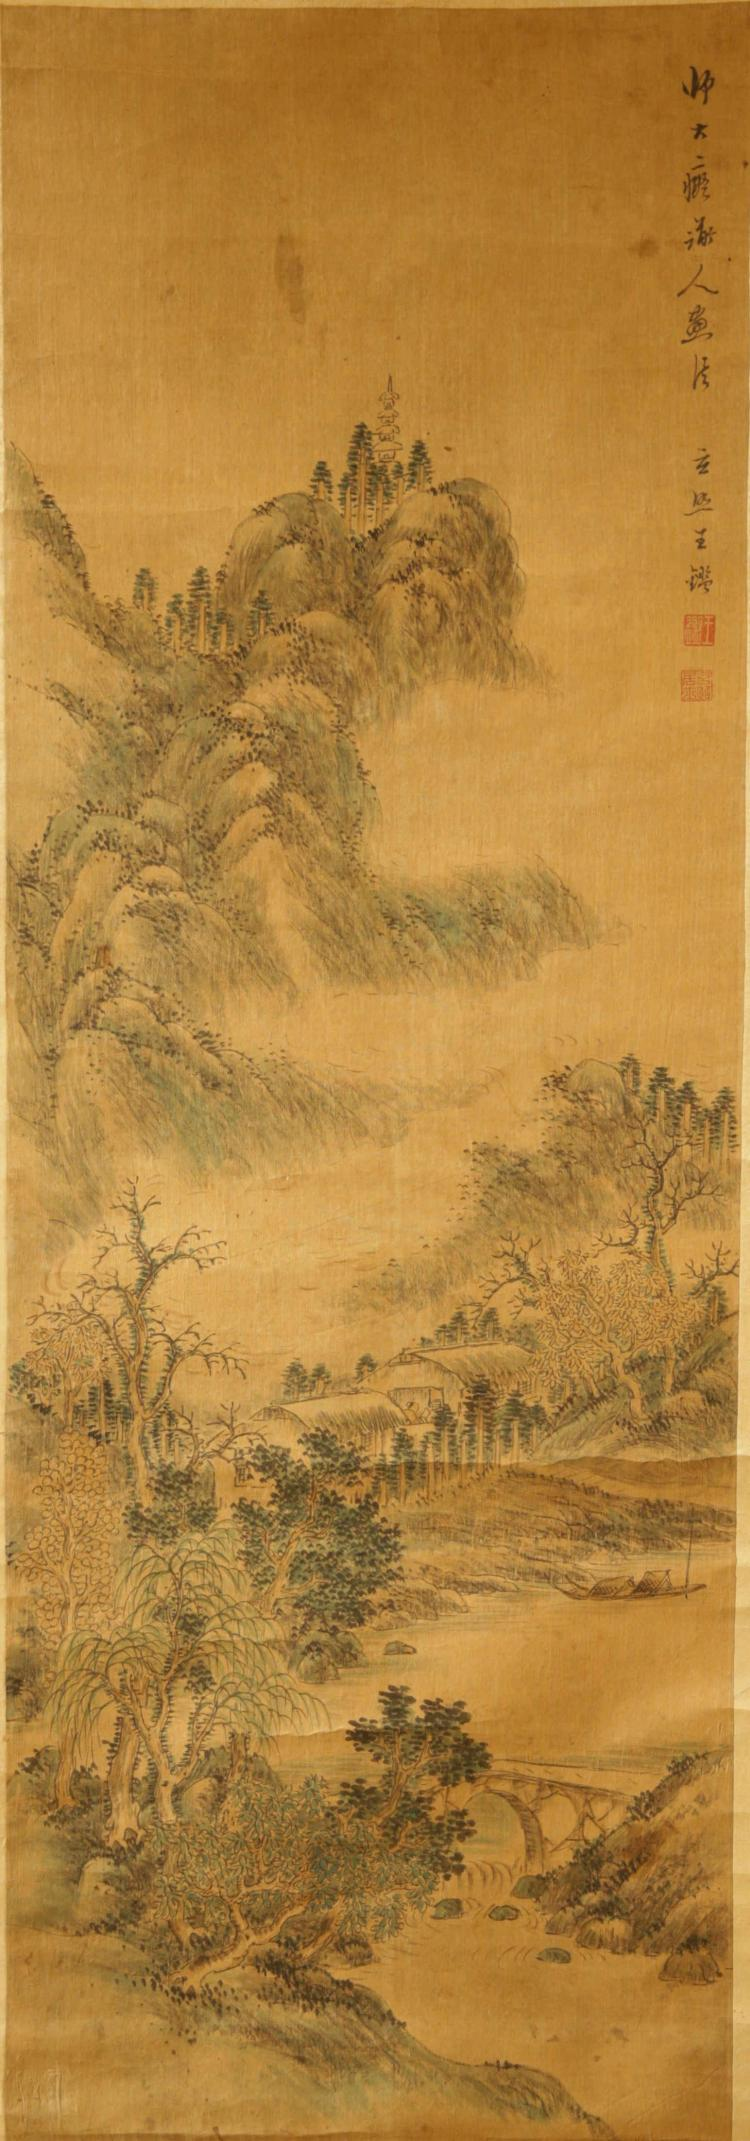 Chinese Scroll Painting Attributed to Wang Jian (1598-1677d